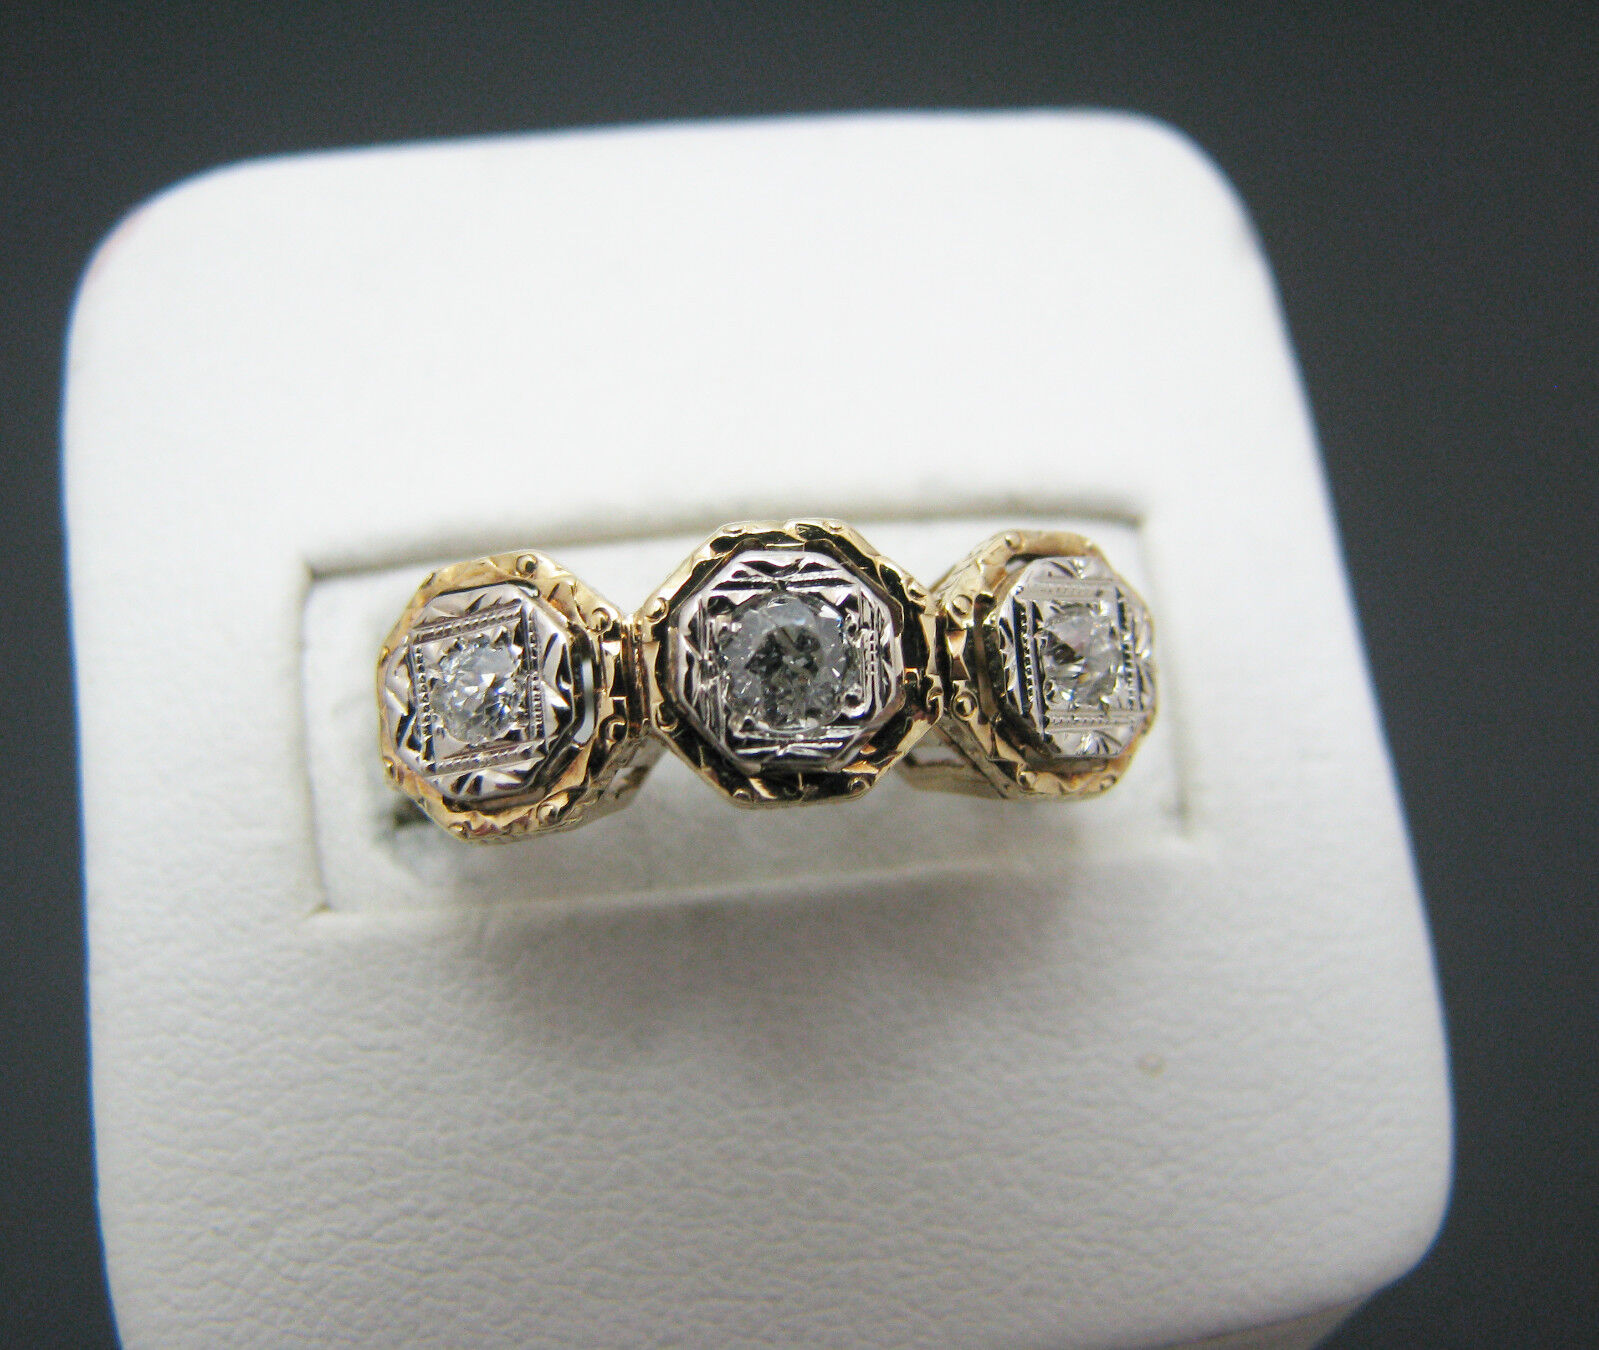 A855 Stunning Vintage (3) Diamond Ring in 14k Yellow gold Mounting